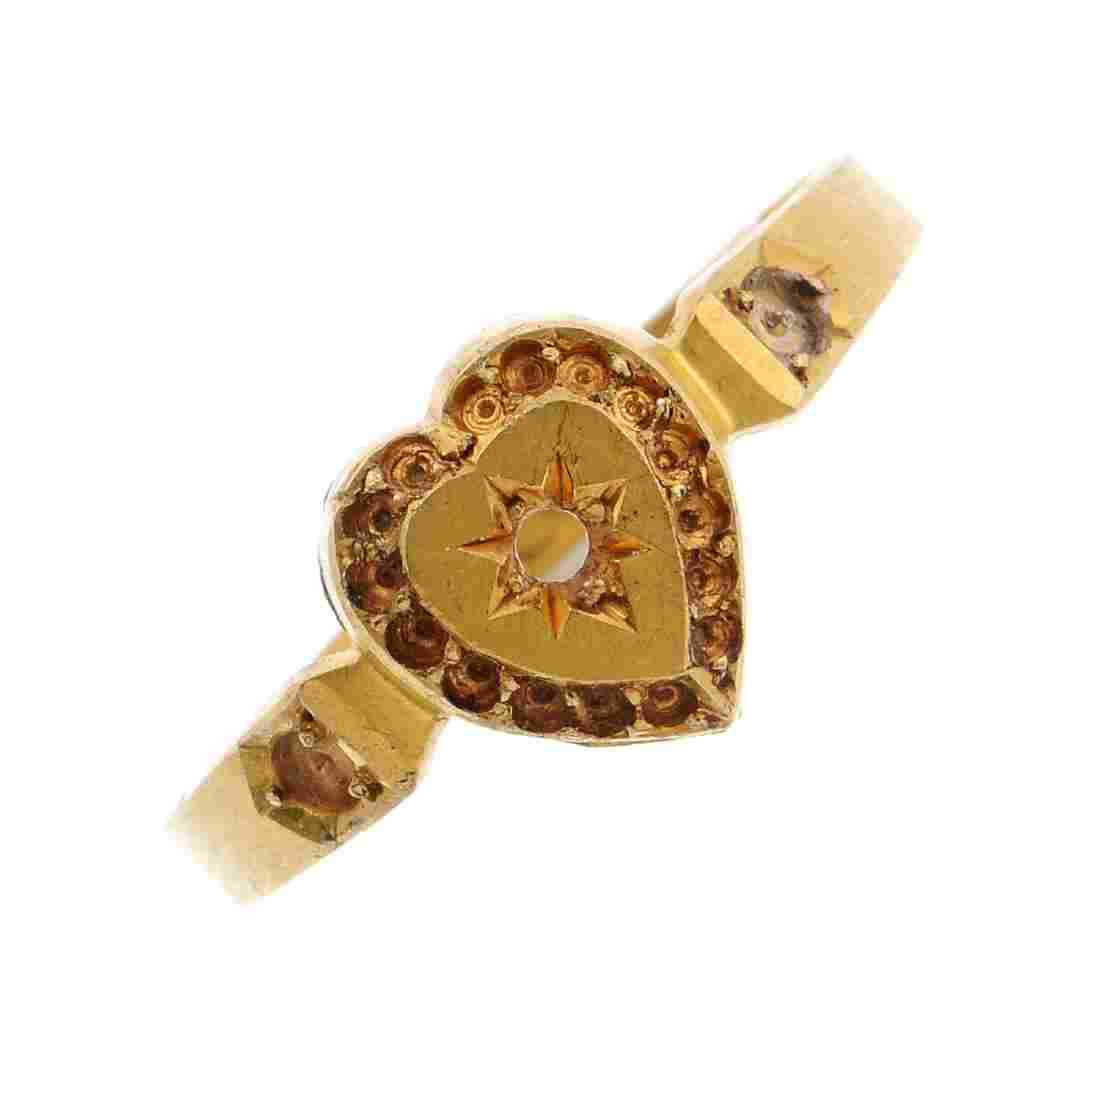 A late Victorian 18ct gold ring mount. Designed as a